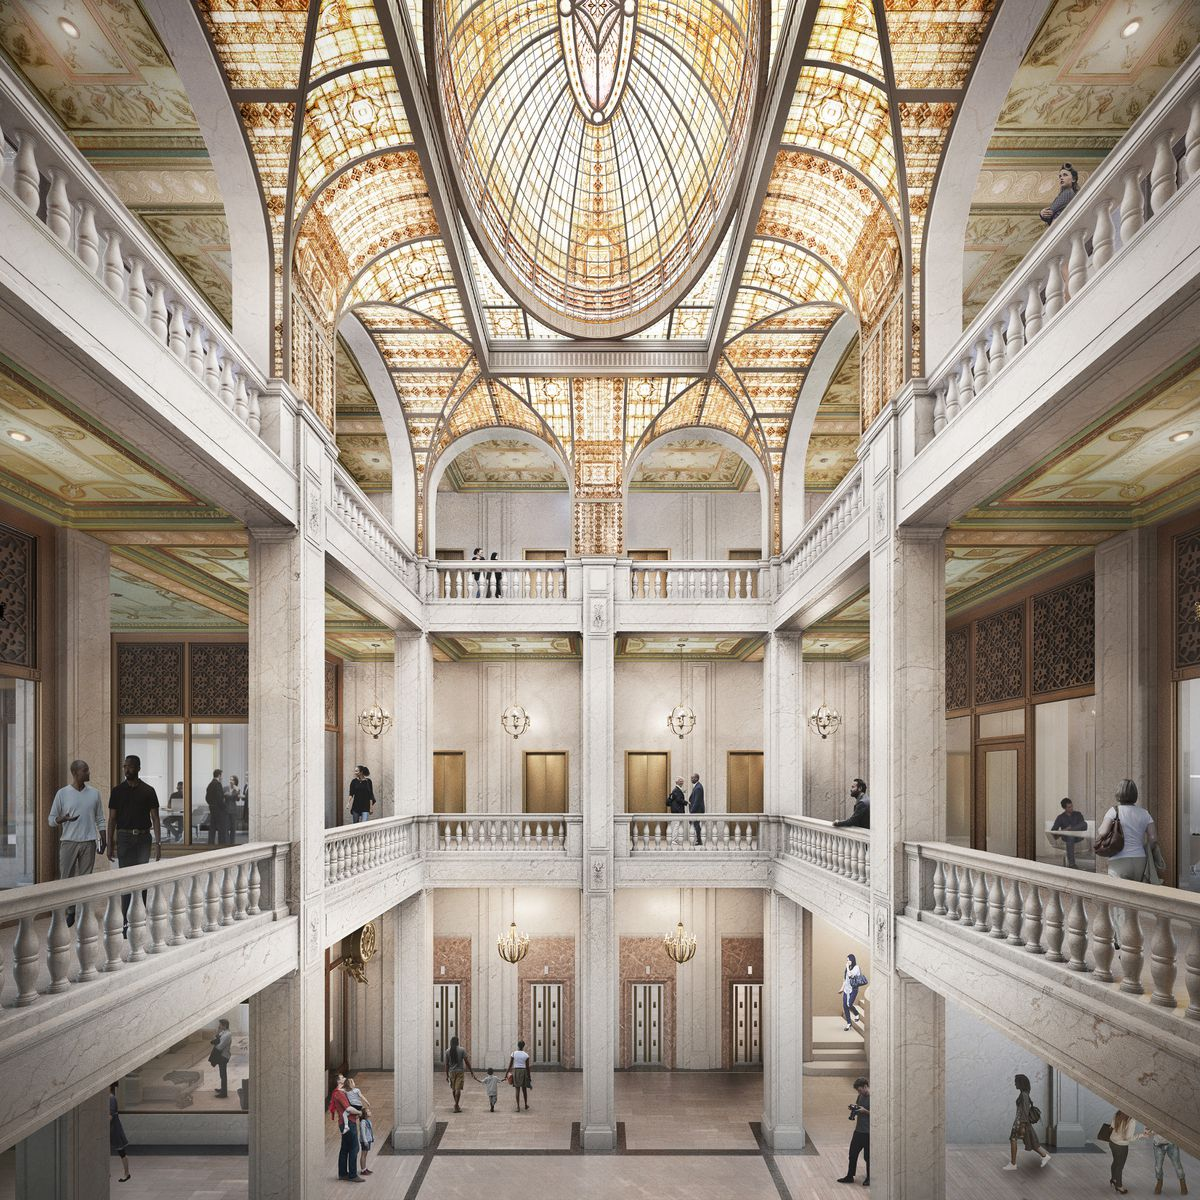 The three-story lobby has a big open space in the middle with gold front doors and a shimmering, curved skylight. People mingle on the ground floor and around the railings on the upper floors.